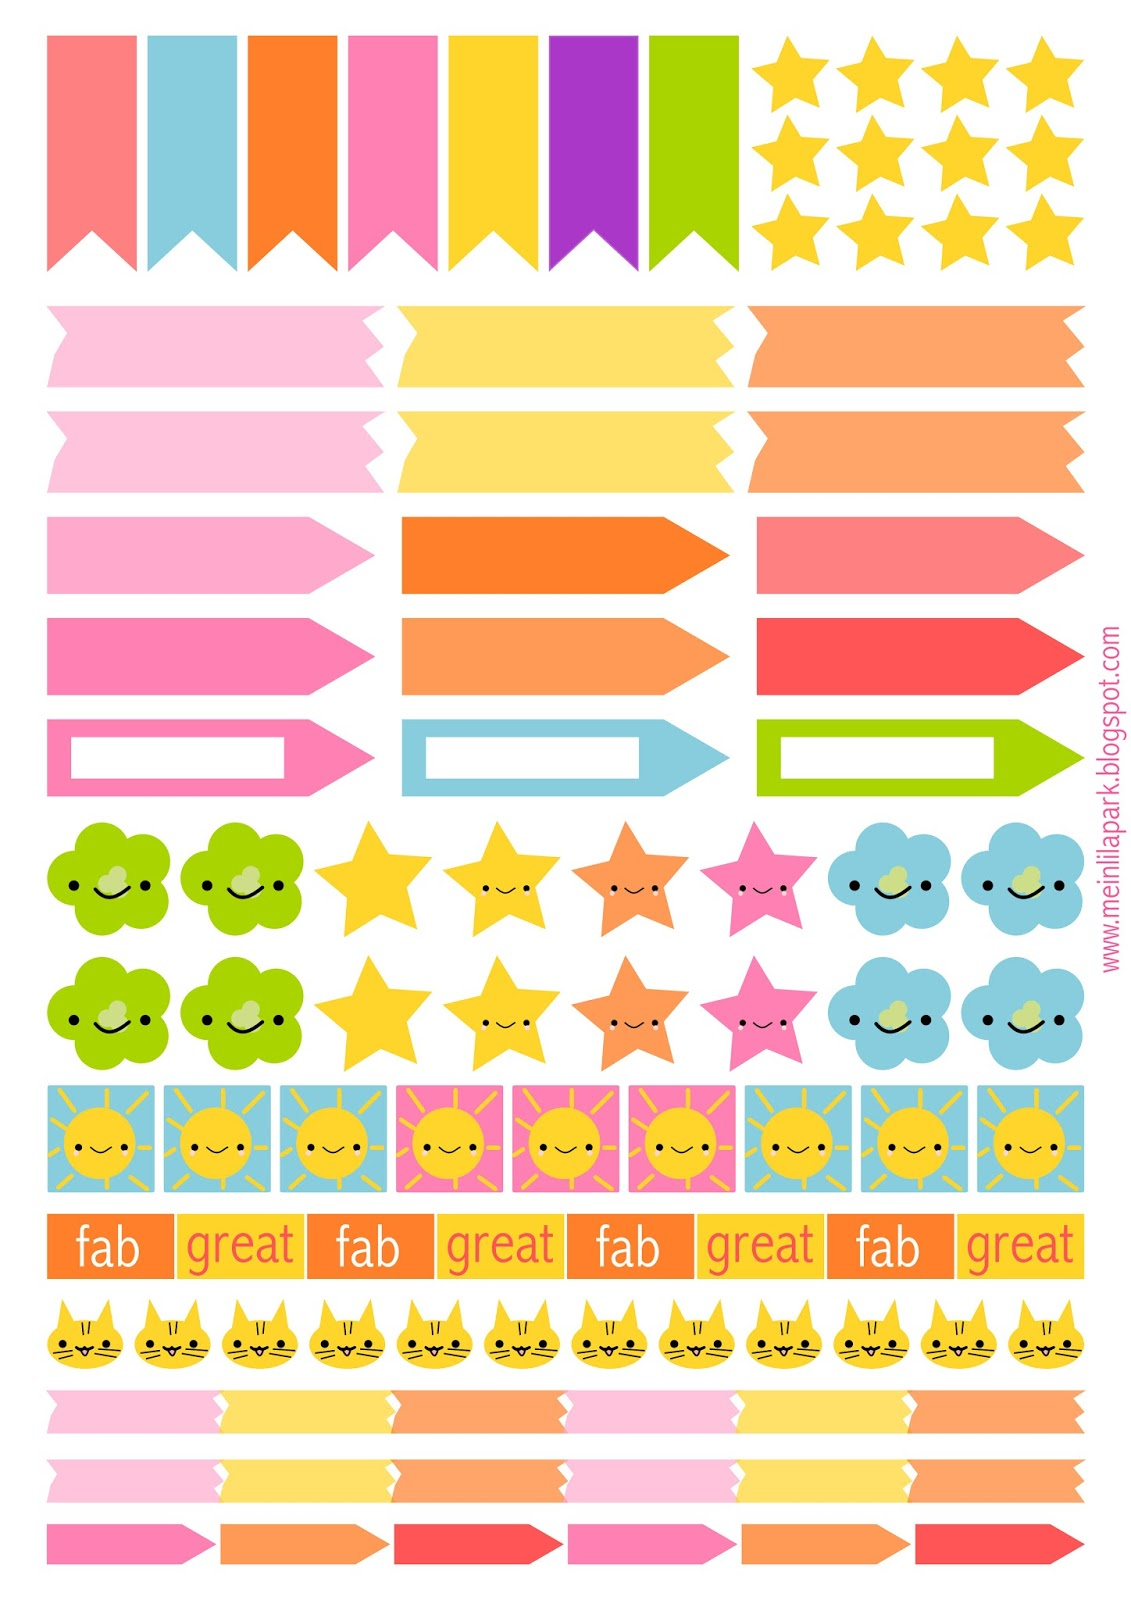 Free printable planner flags and stickers ausdruckbare for Planner casa online gratis